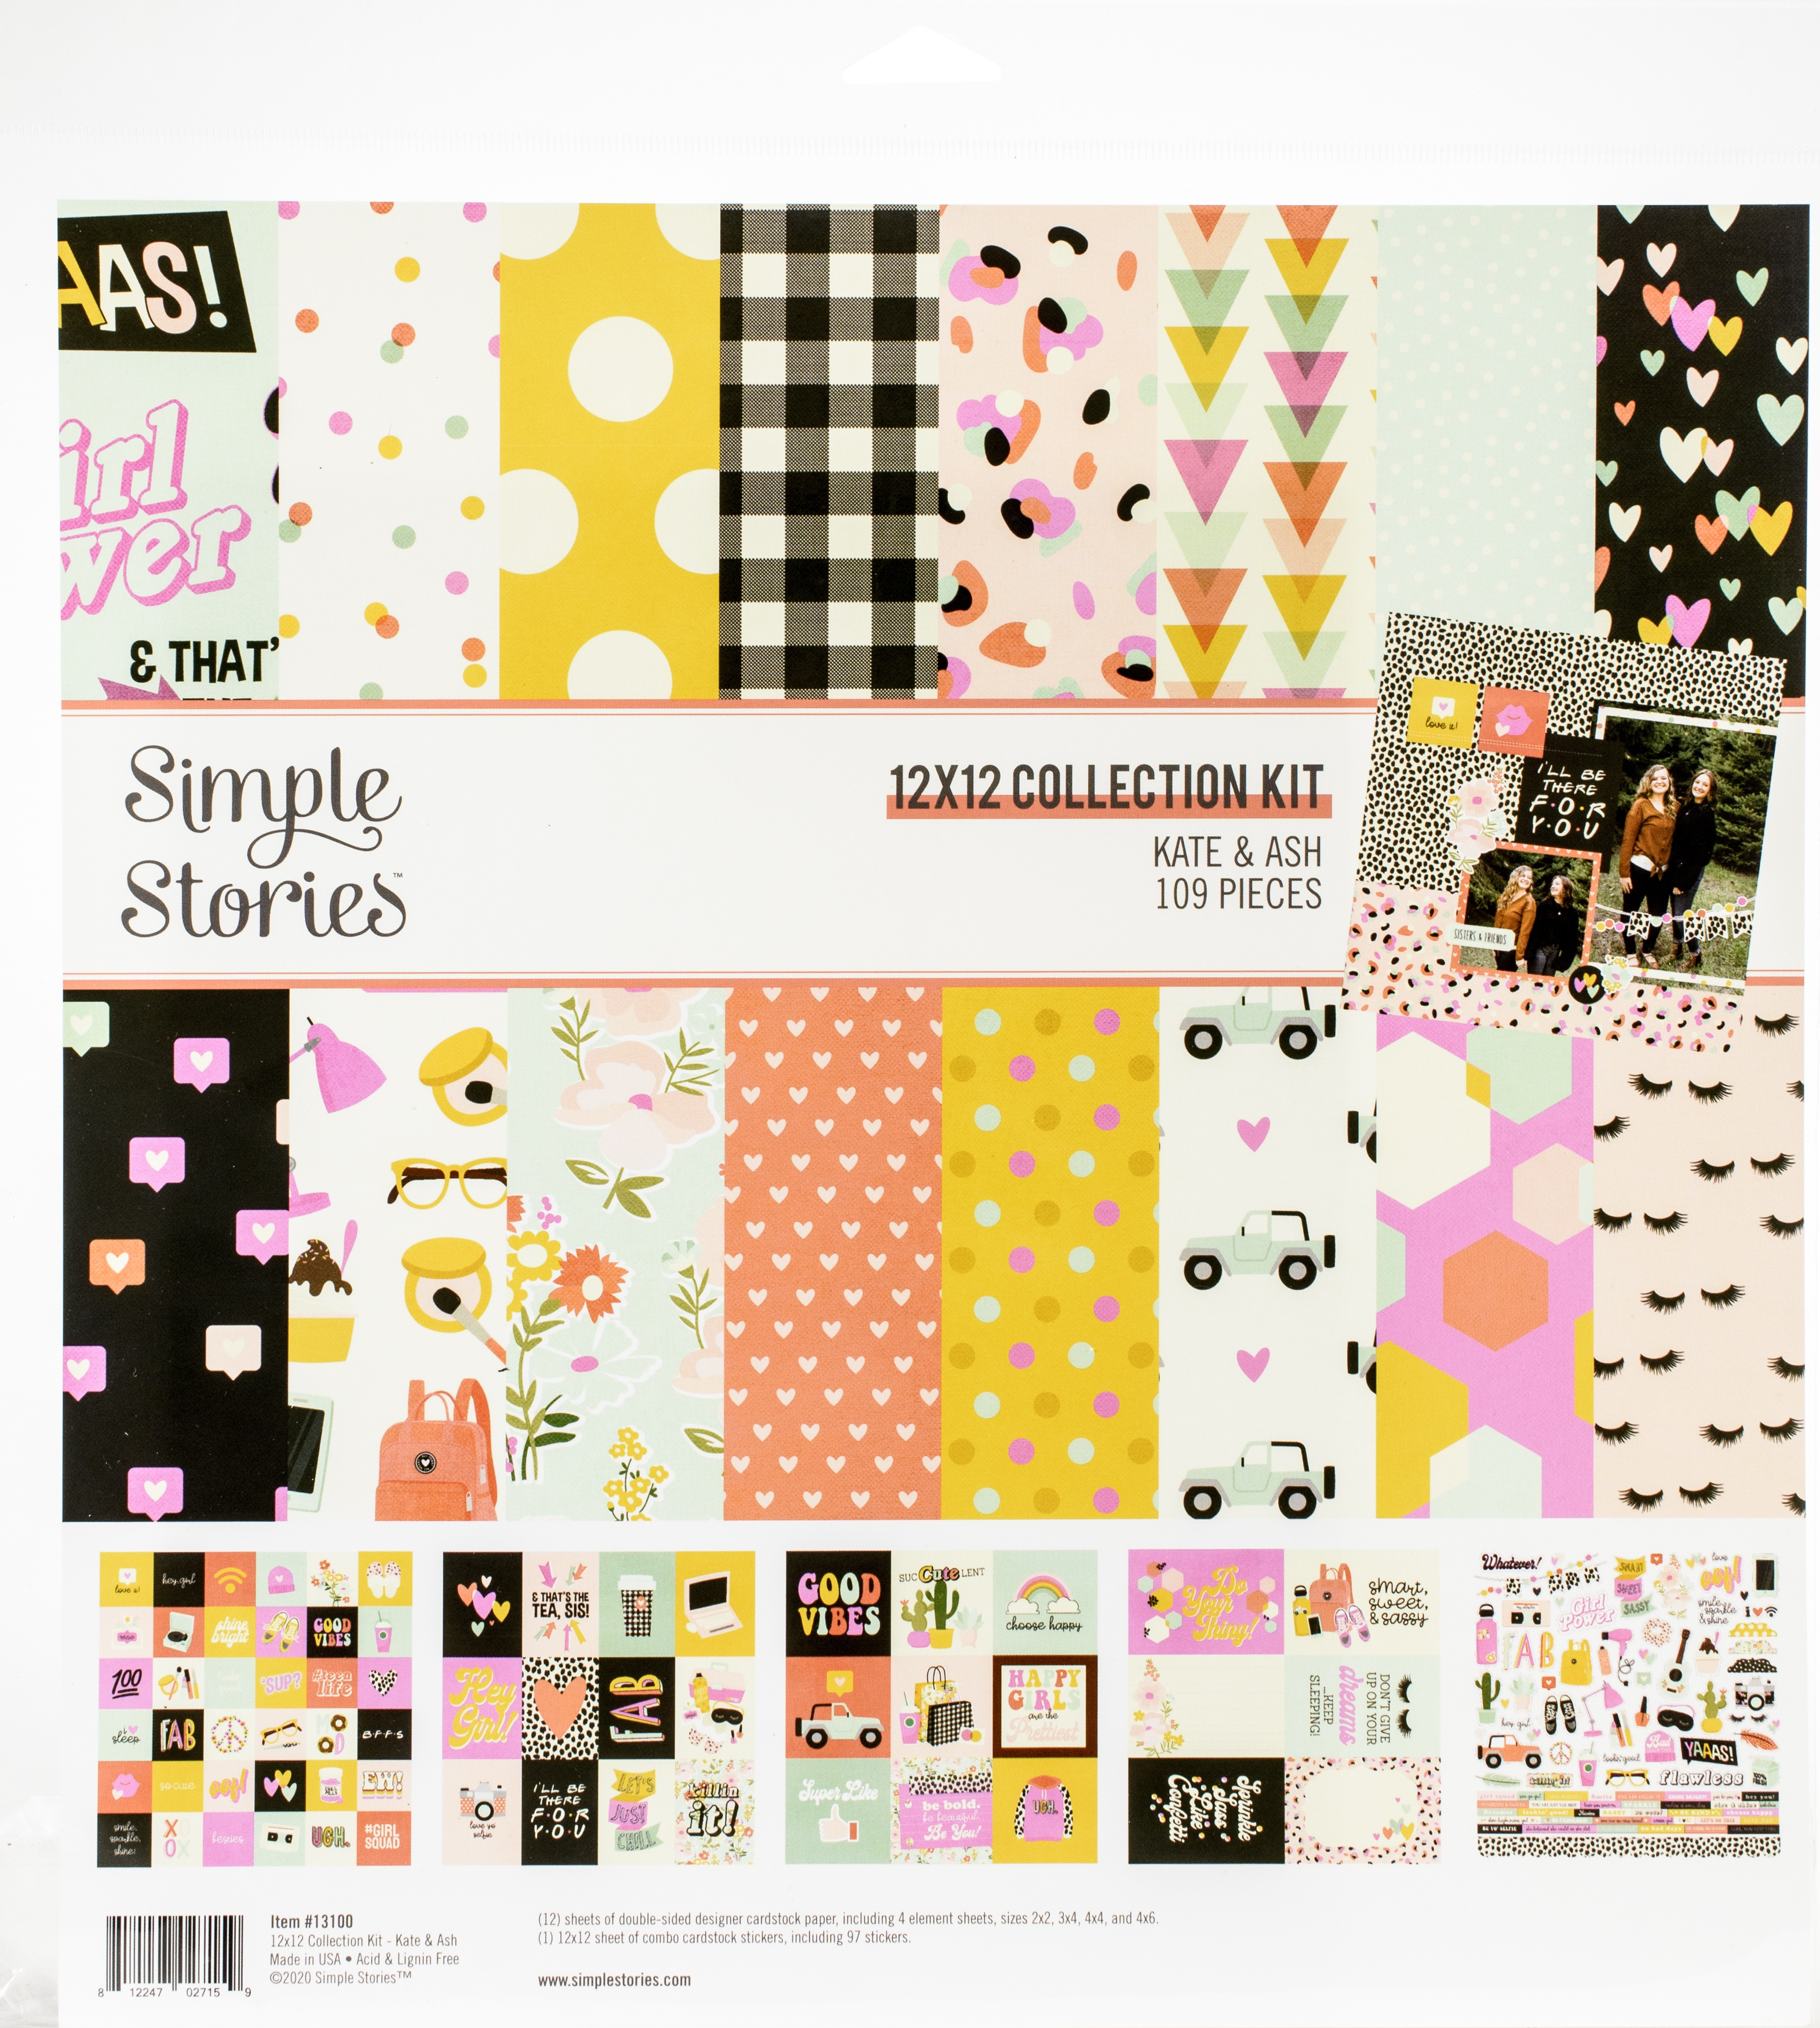 Simple Stories Collection Kit 12X12-Kate & Ash